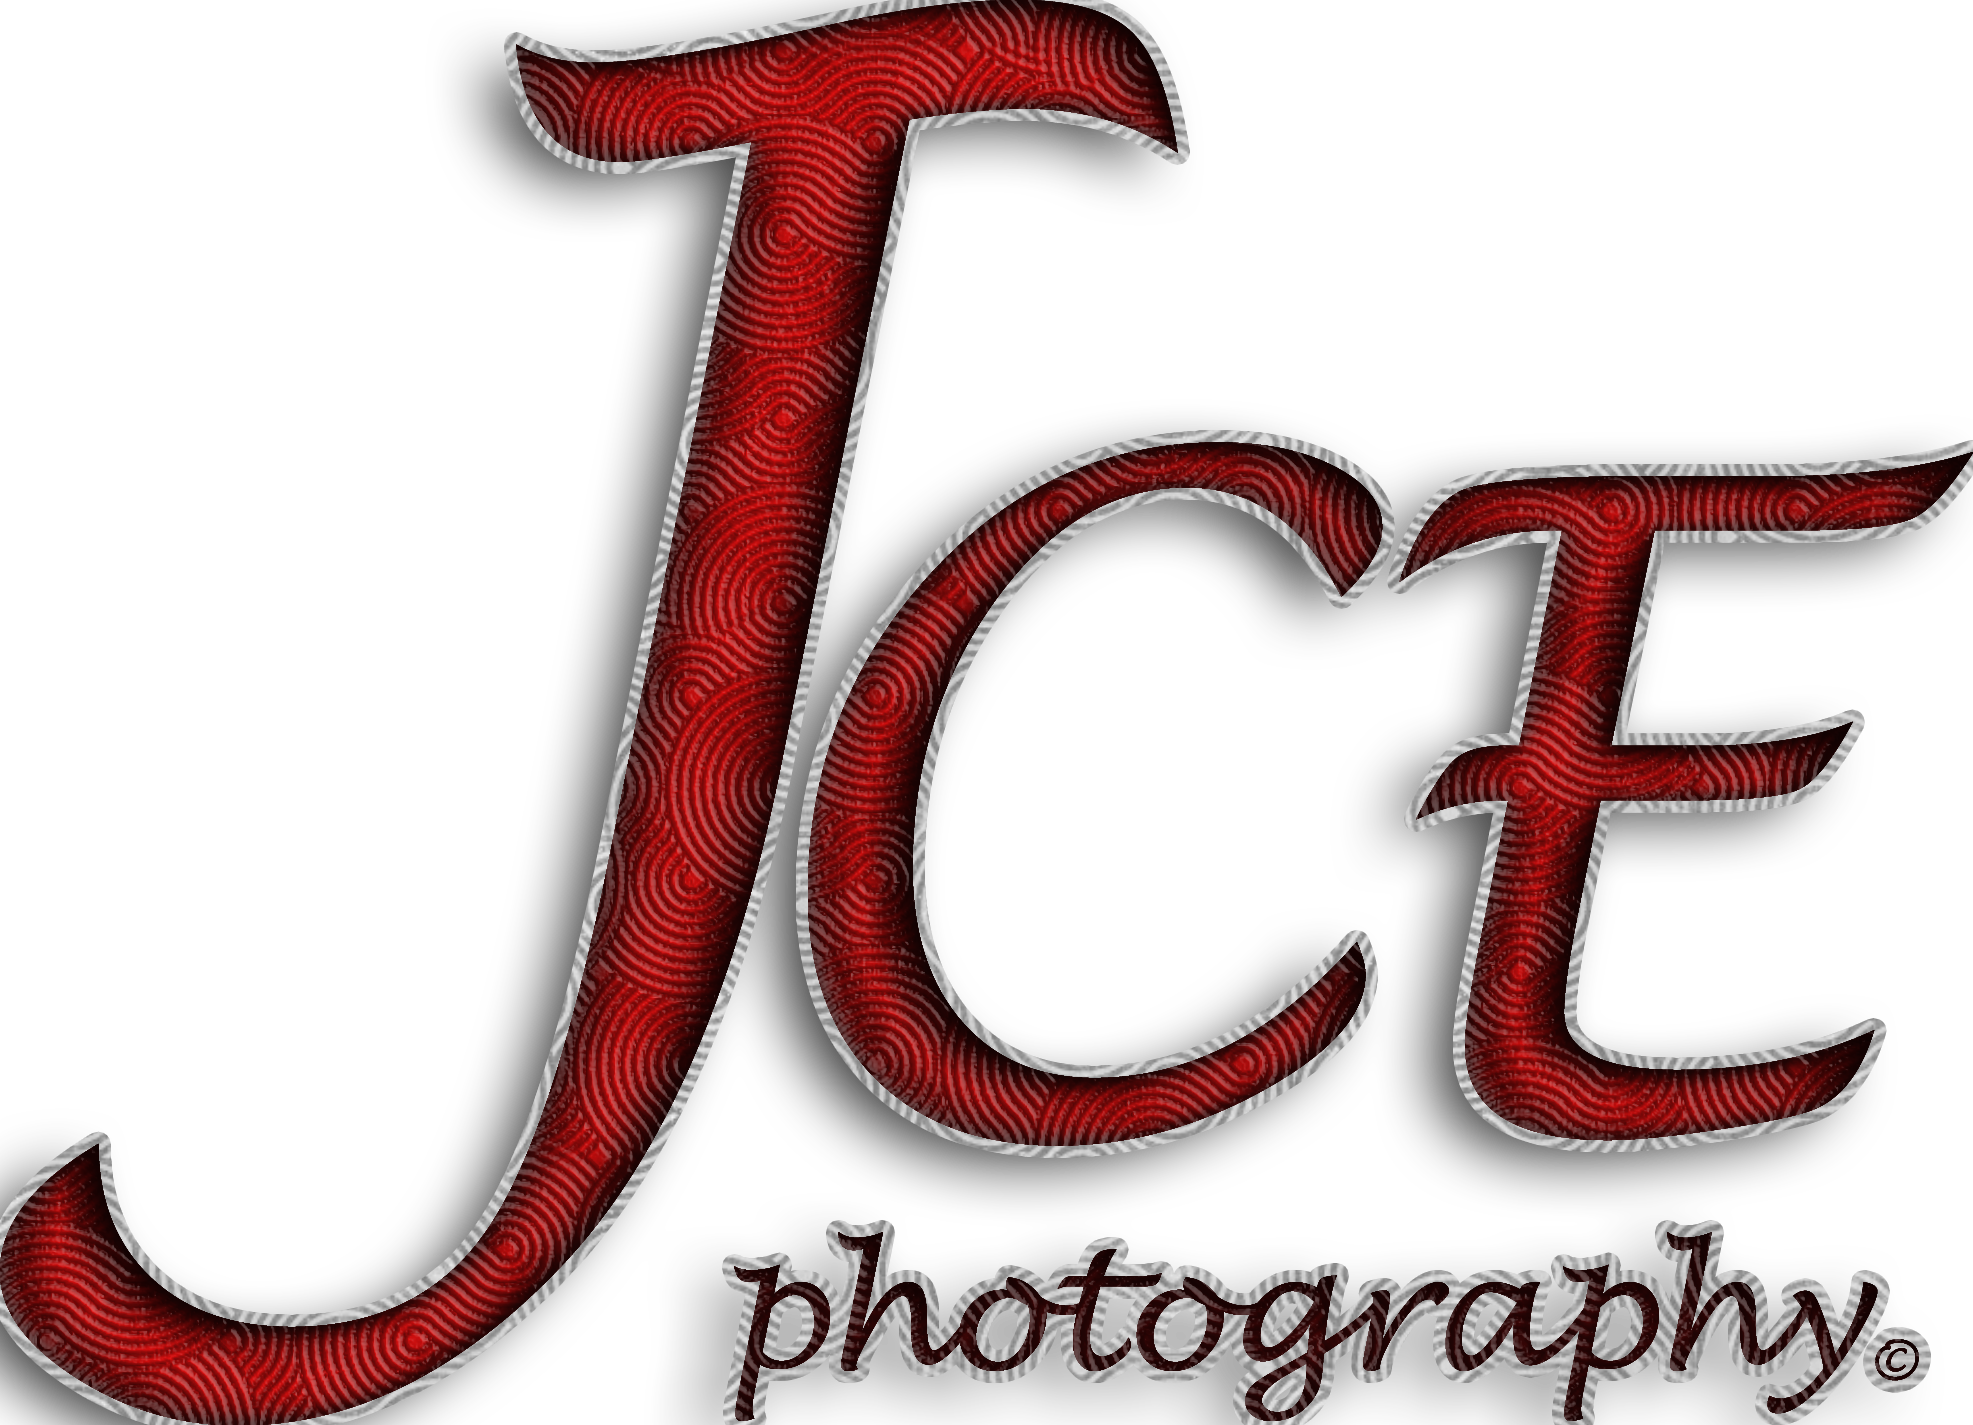 JCE Photography